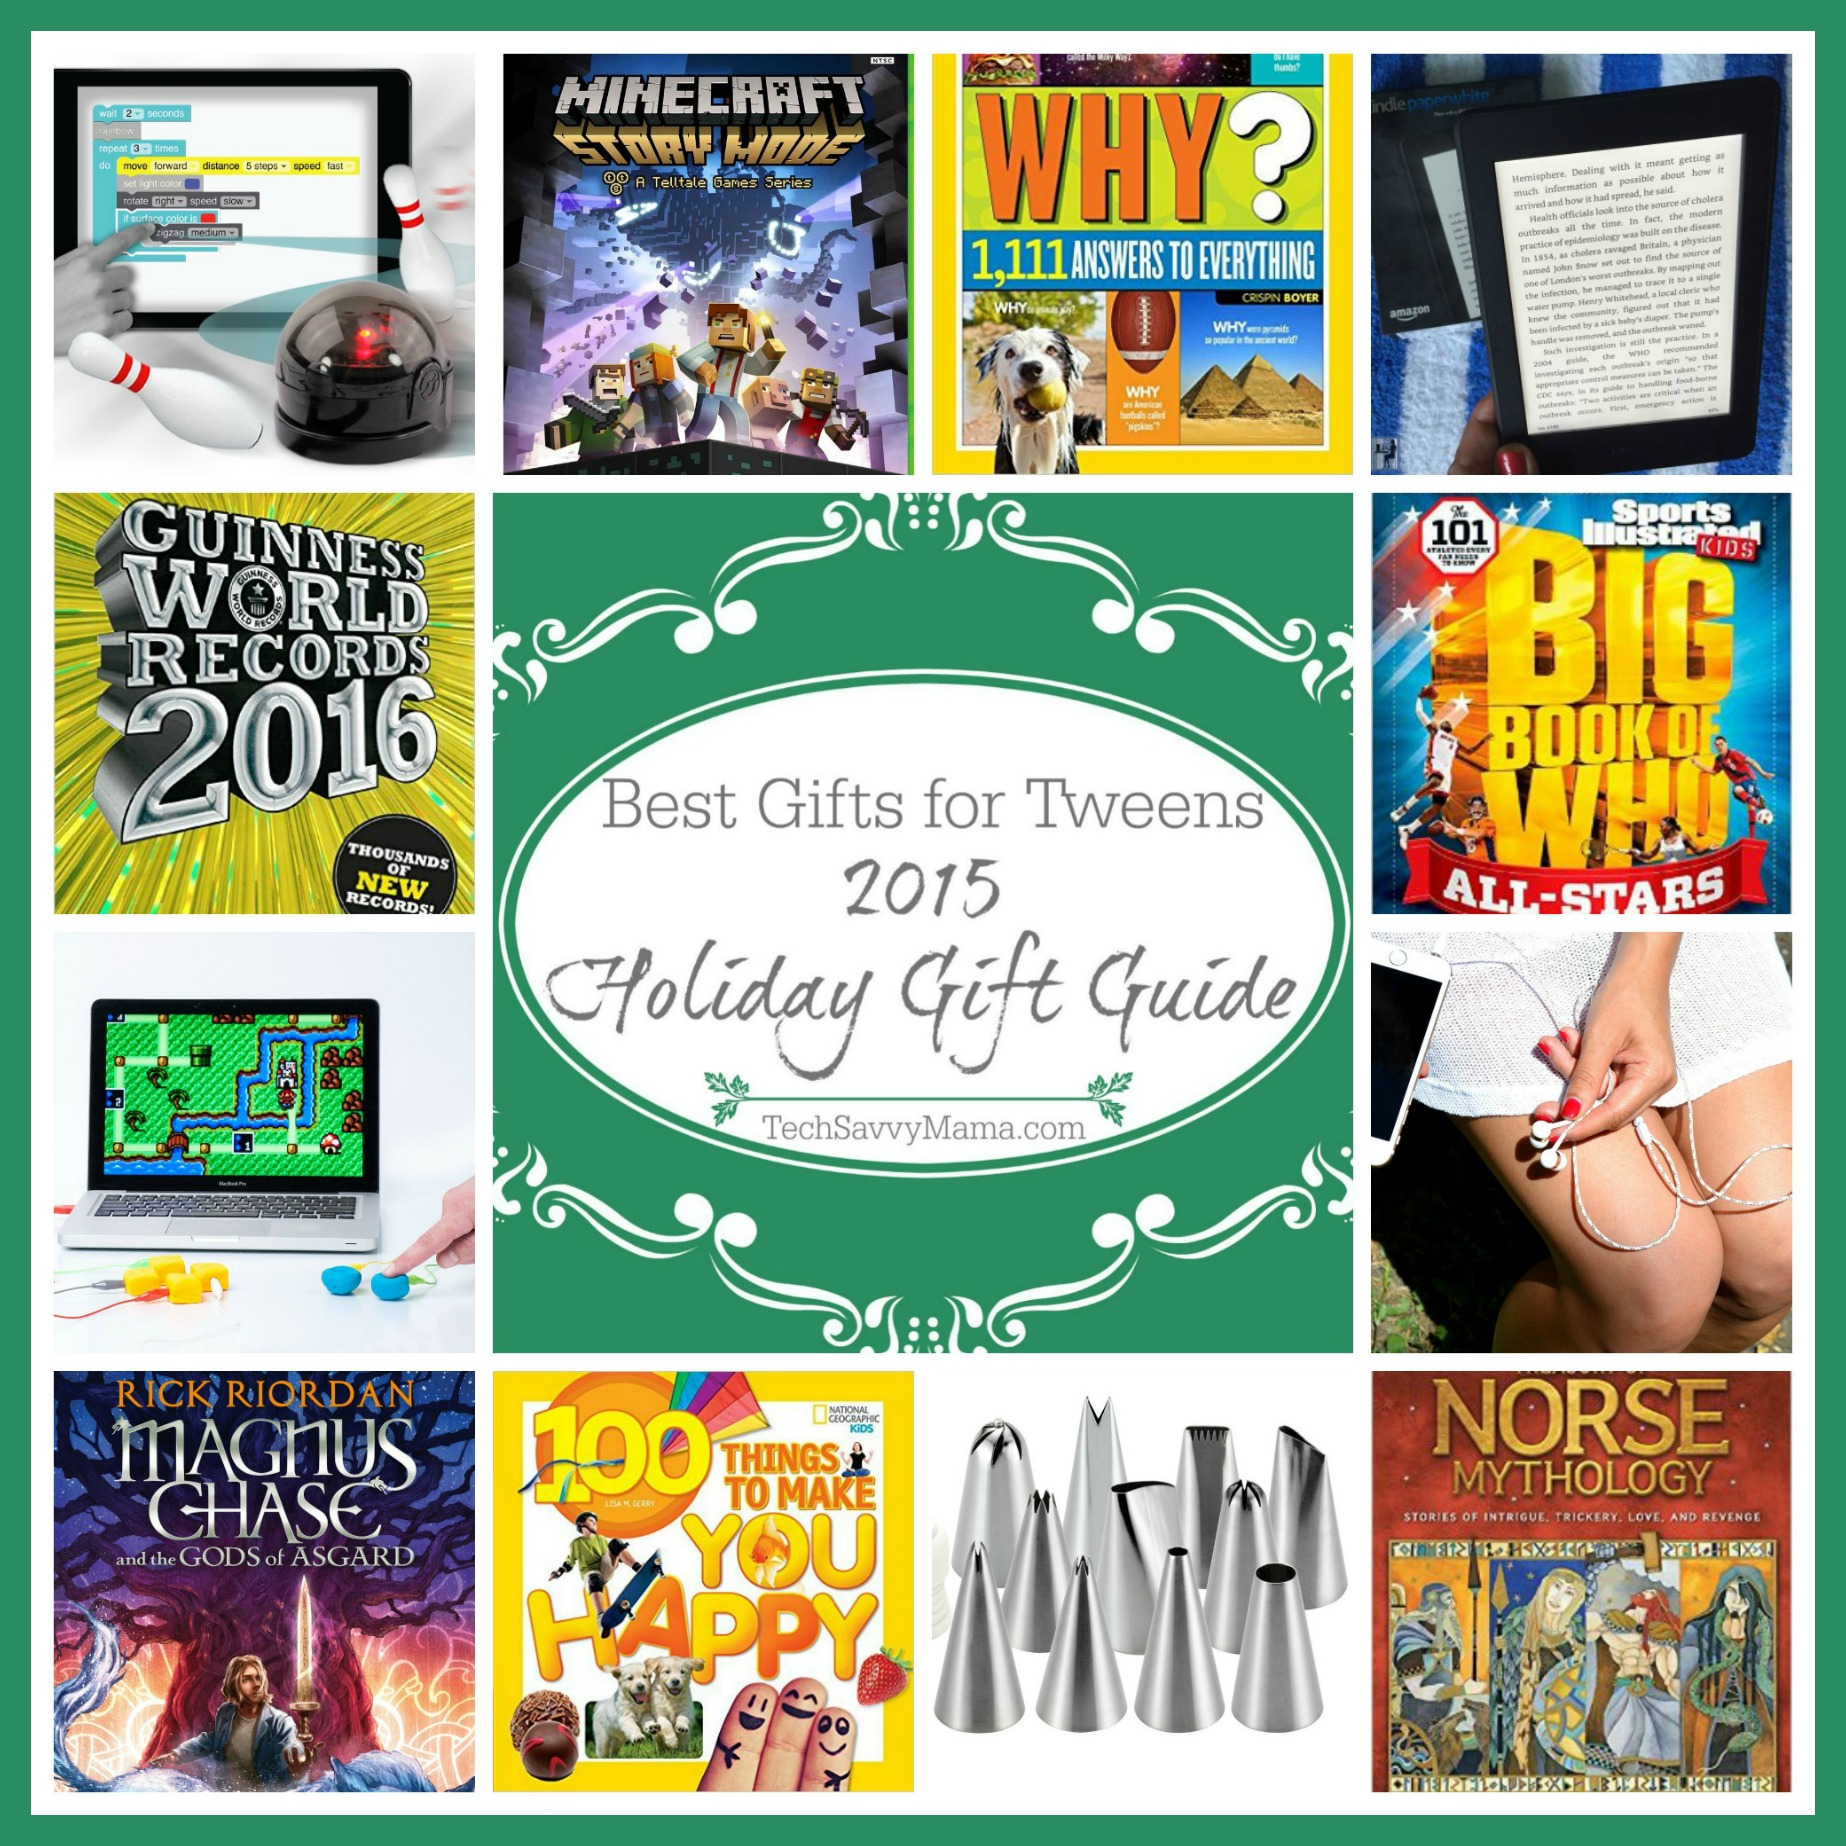 2015 Gift Guide: Best Gifts for Tweens (ages 8-12 or grades 3-6)